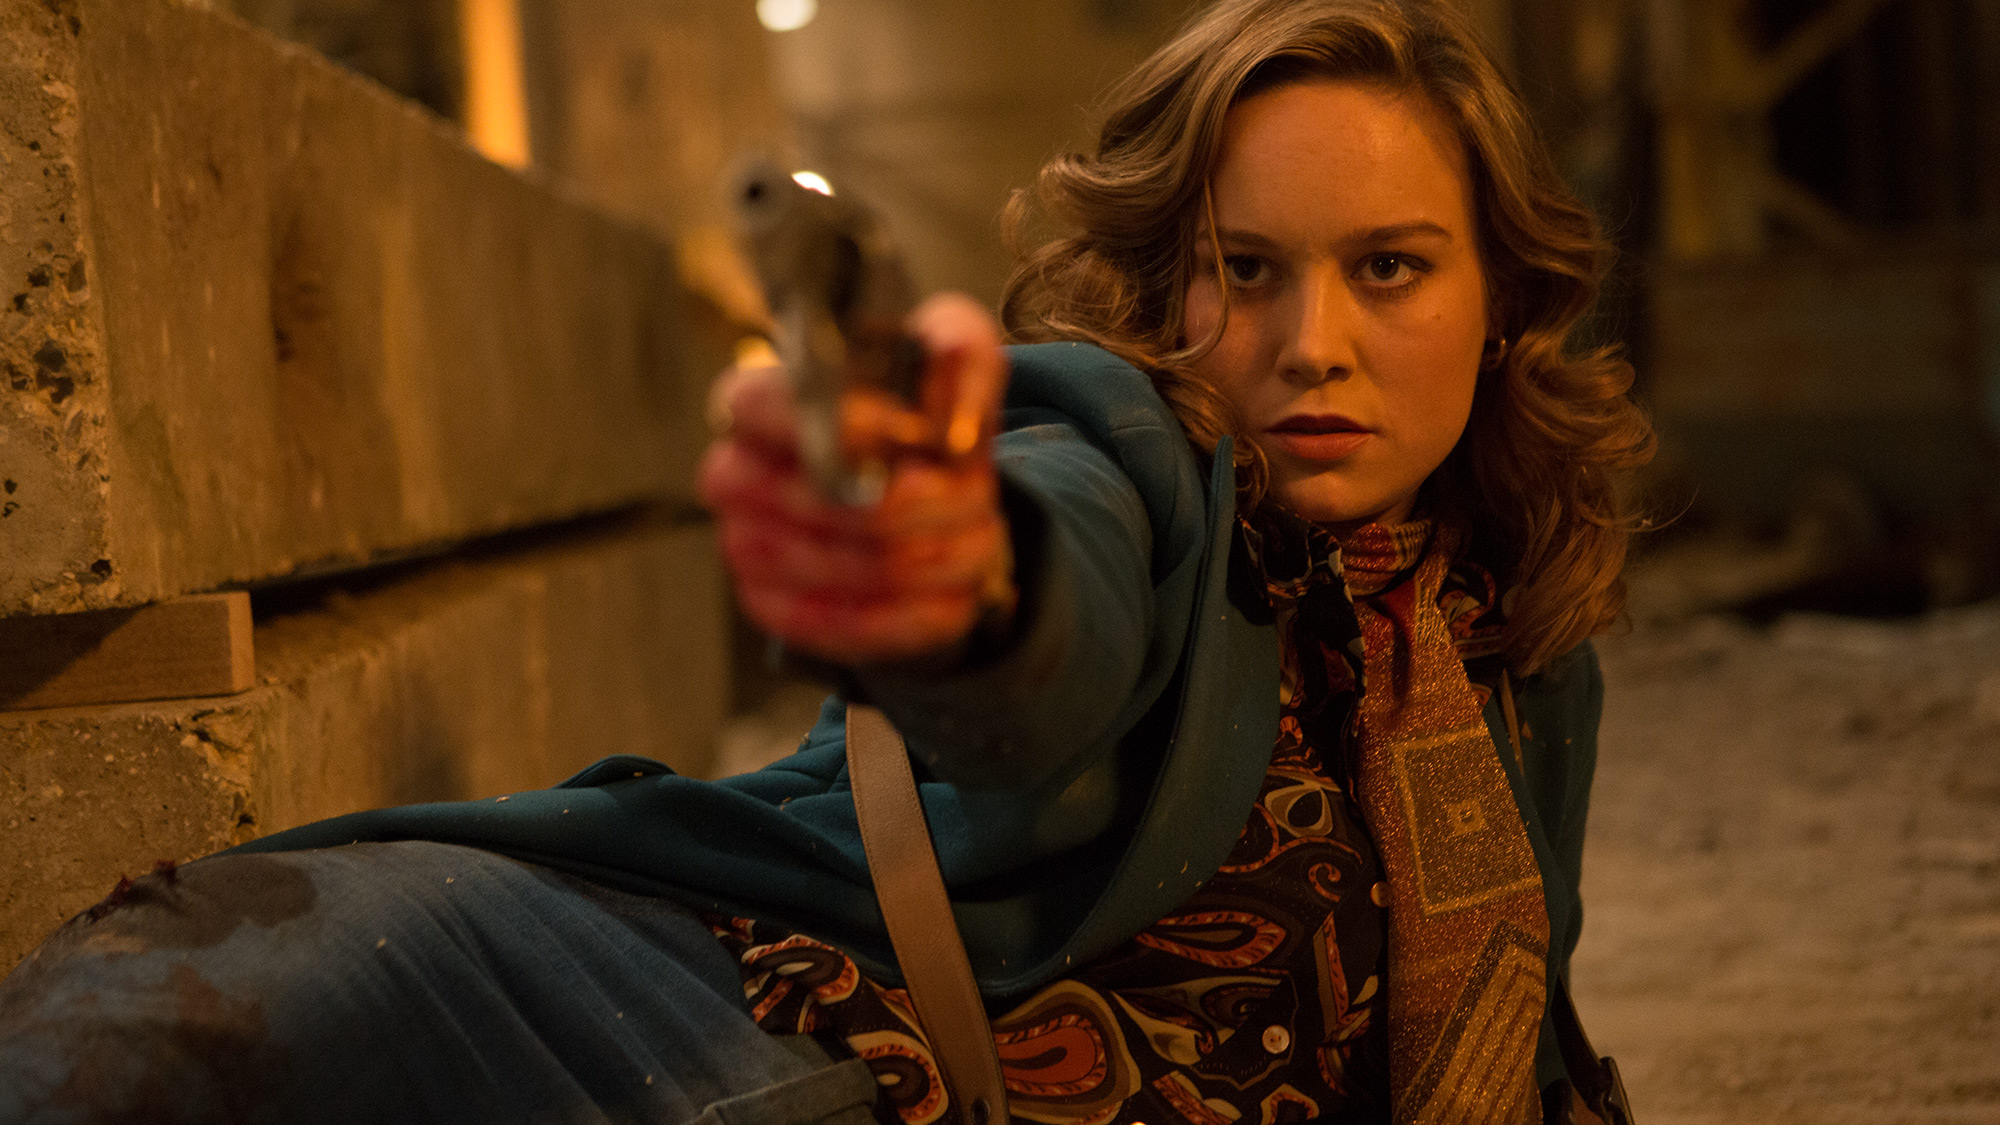 Brie Larson as Justine, who helps bring the arms dealers and buyers together.